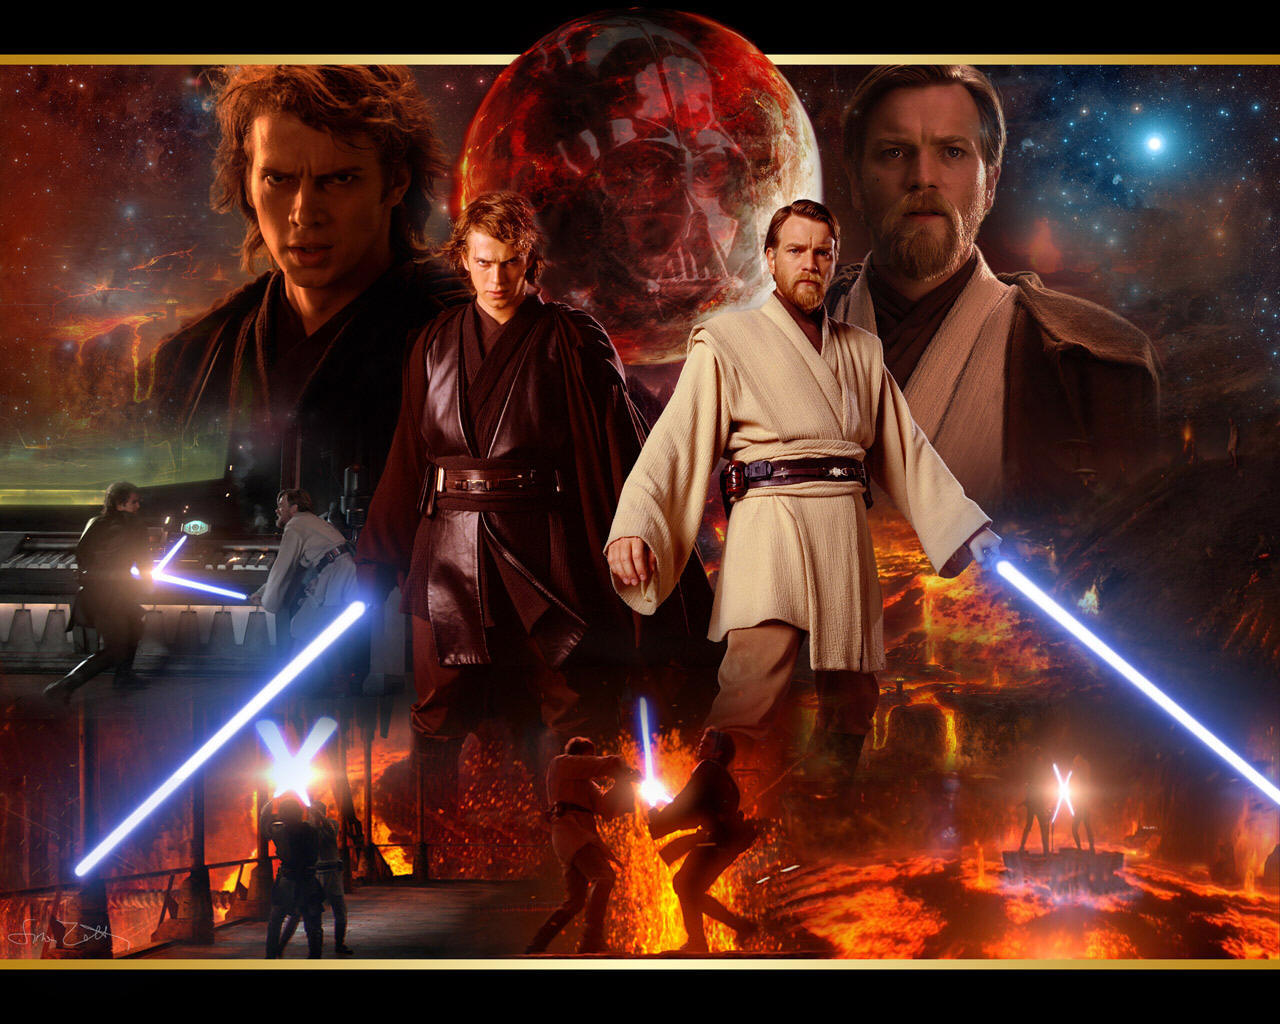 Star Wars Anakin Skywalker Wallpaper: STAR WARS HD WALLPAPERS